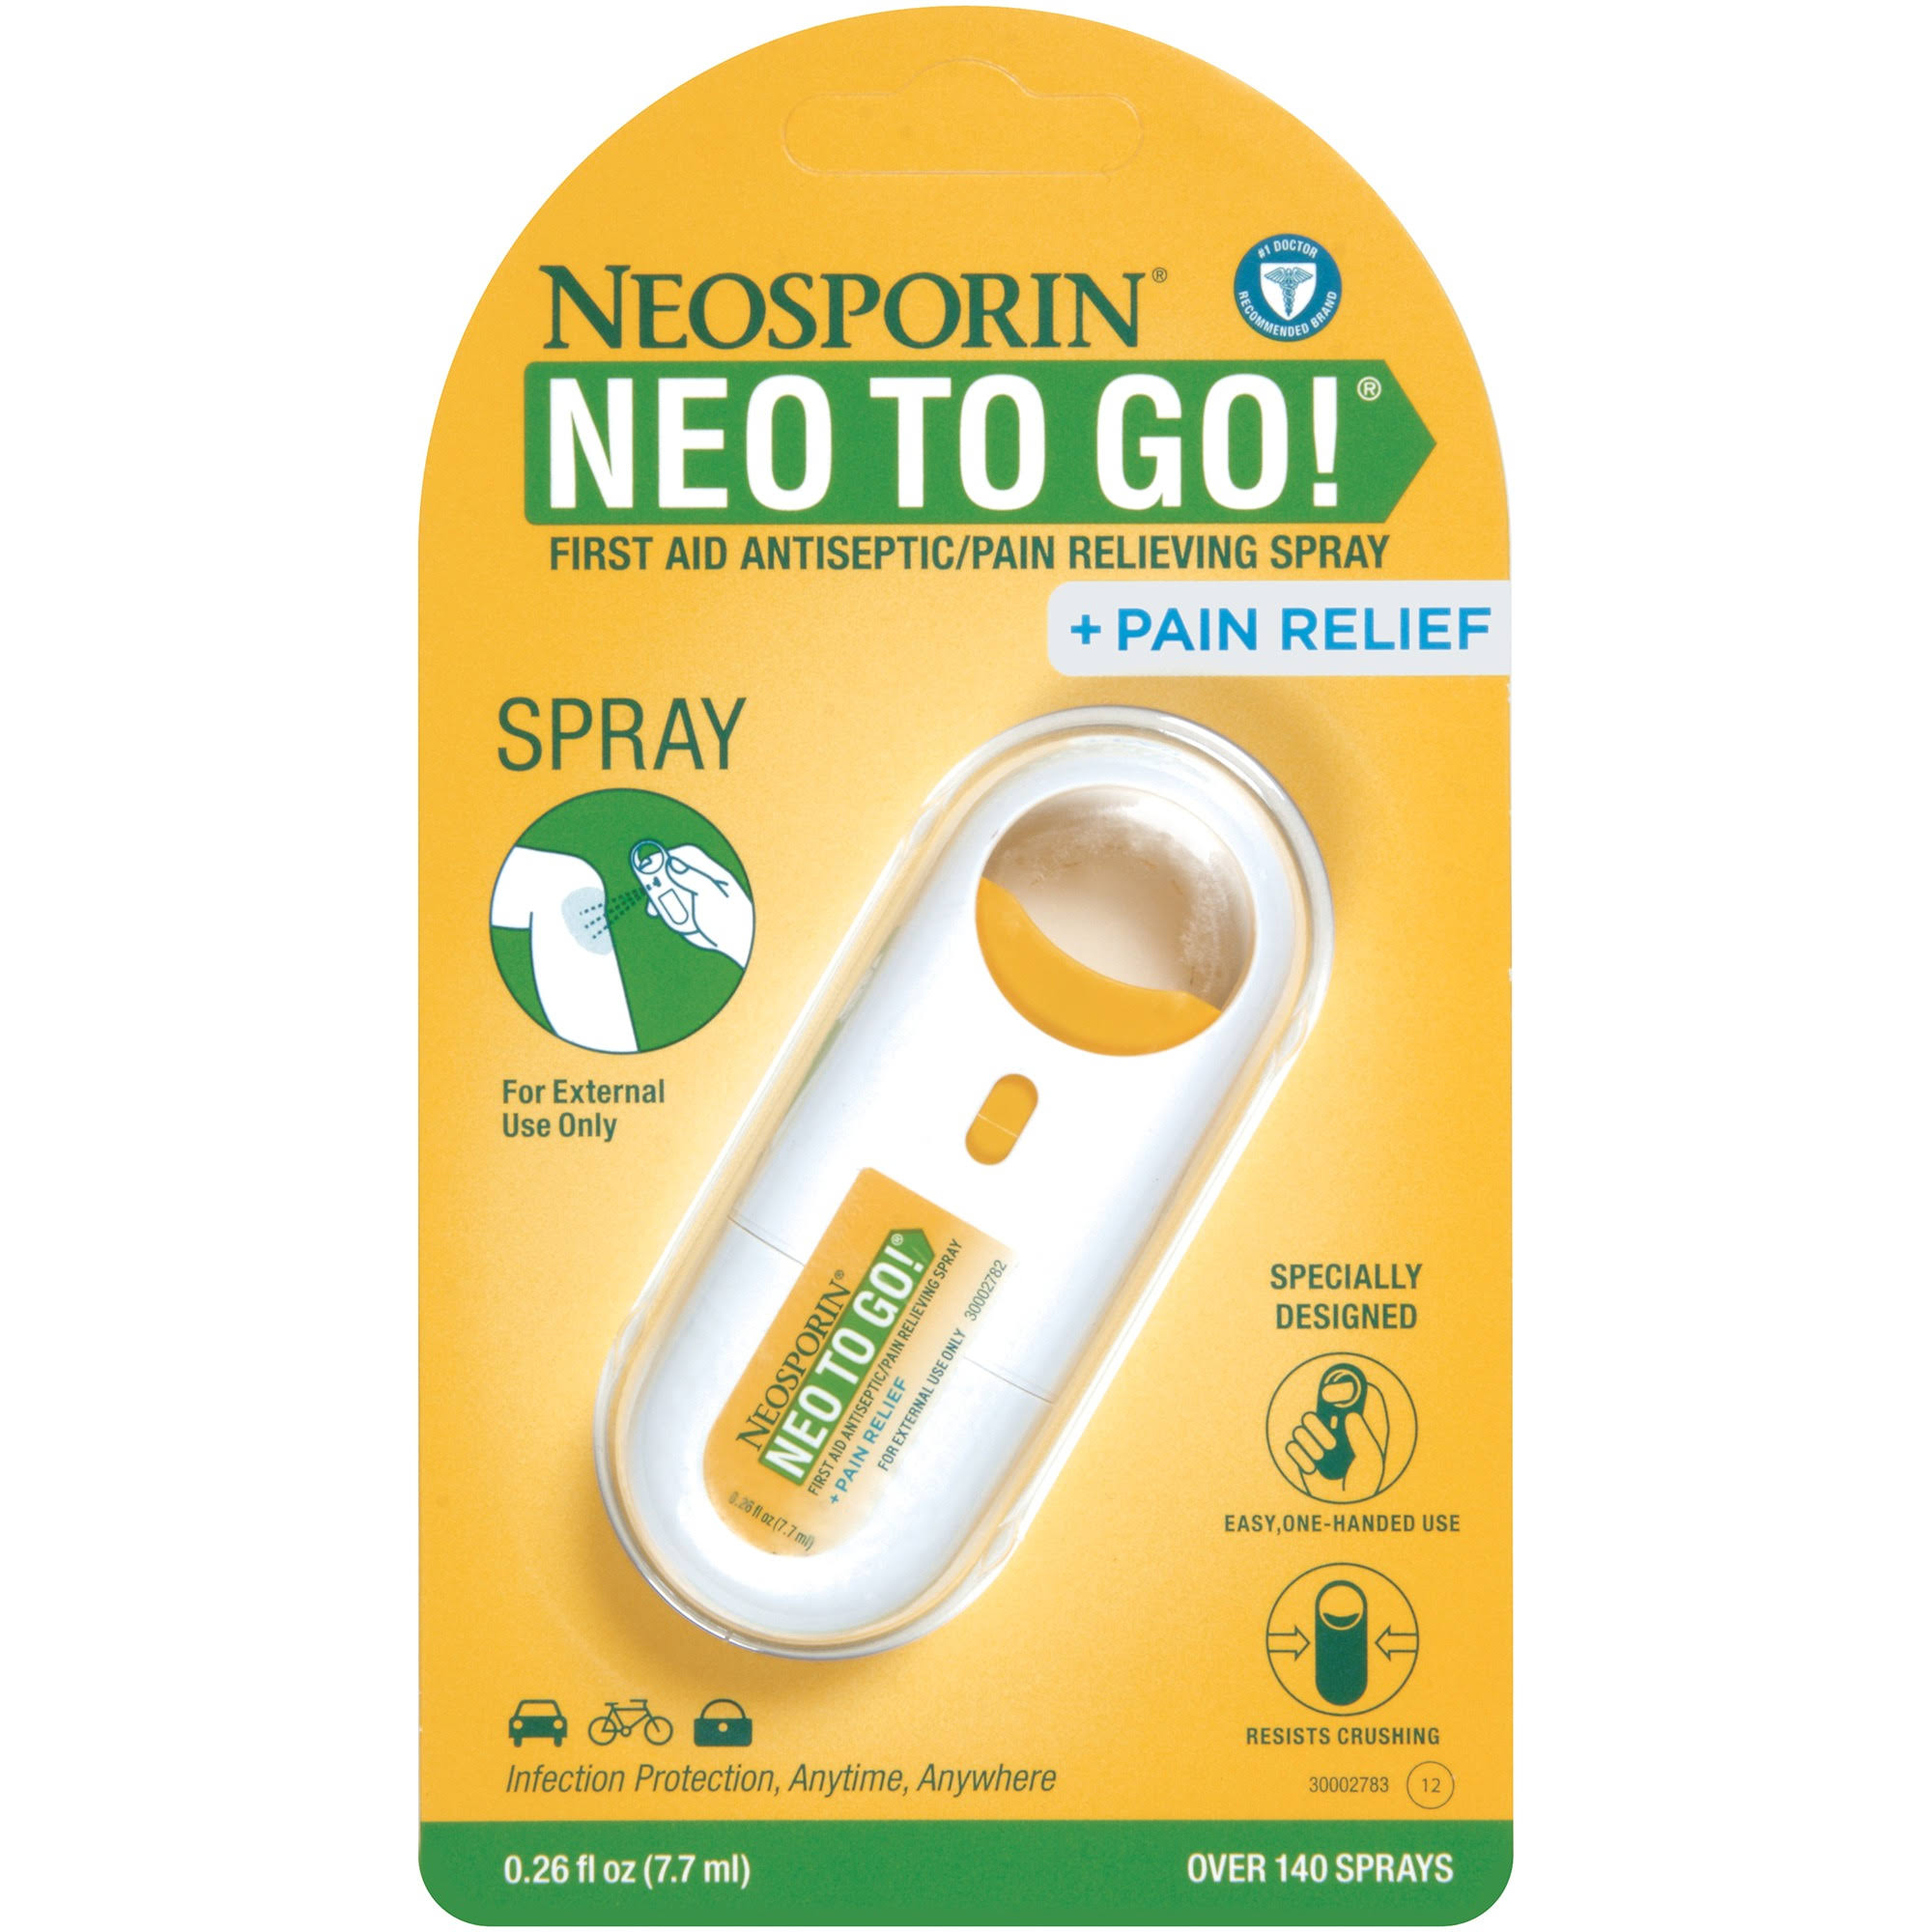 Neosporin Neo to Go Antiseptic Pain Relieving Spray